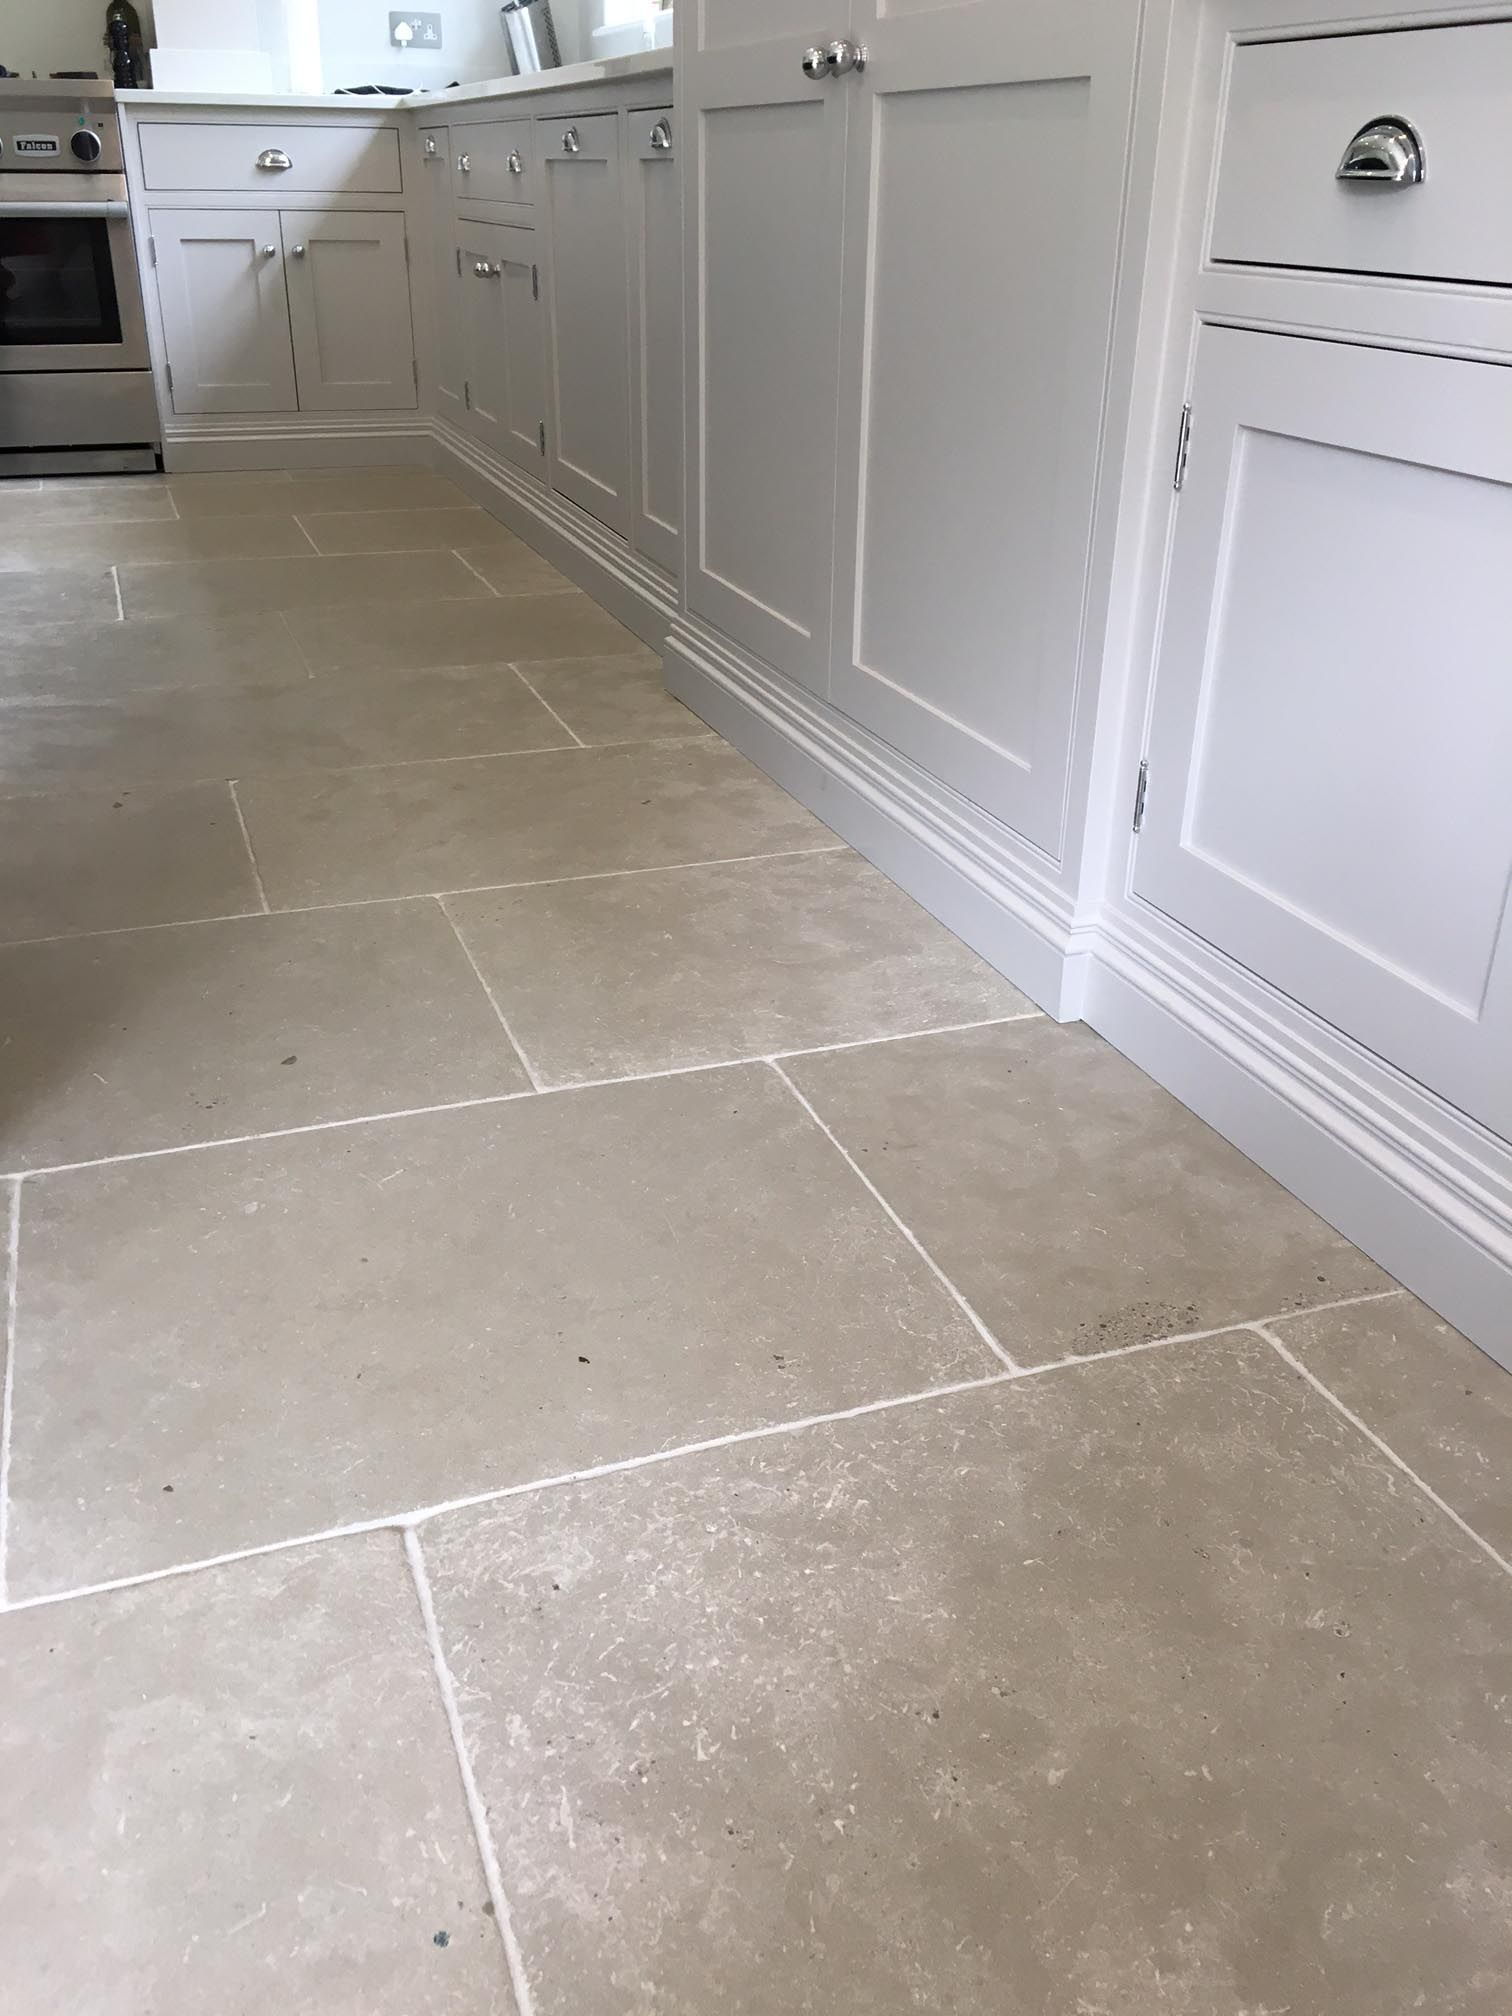 Paris grey limestone tiles for a durable kitchen floor light grey paris grey limestone tiles for a durable kitchen floor light grey toned interior and exterior dailygadgetfo Image collections